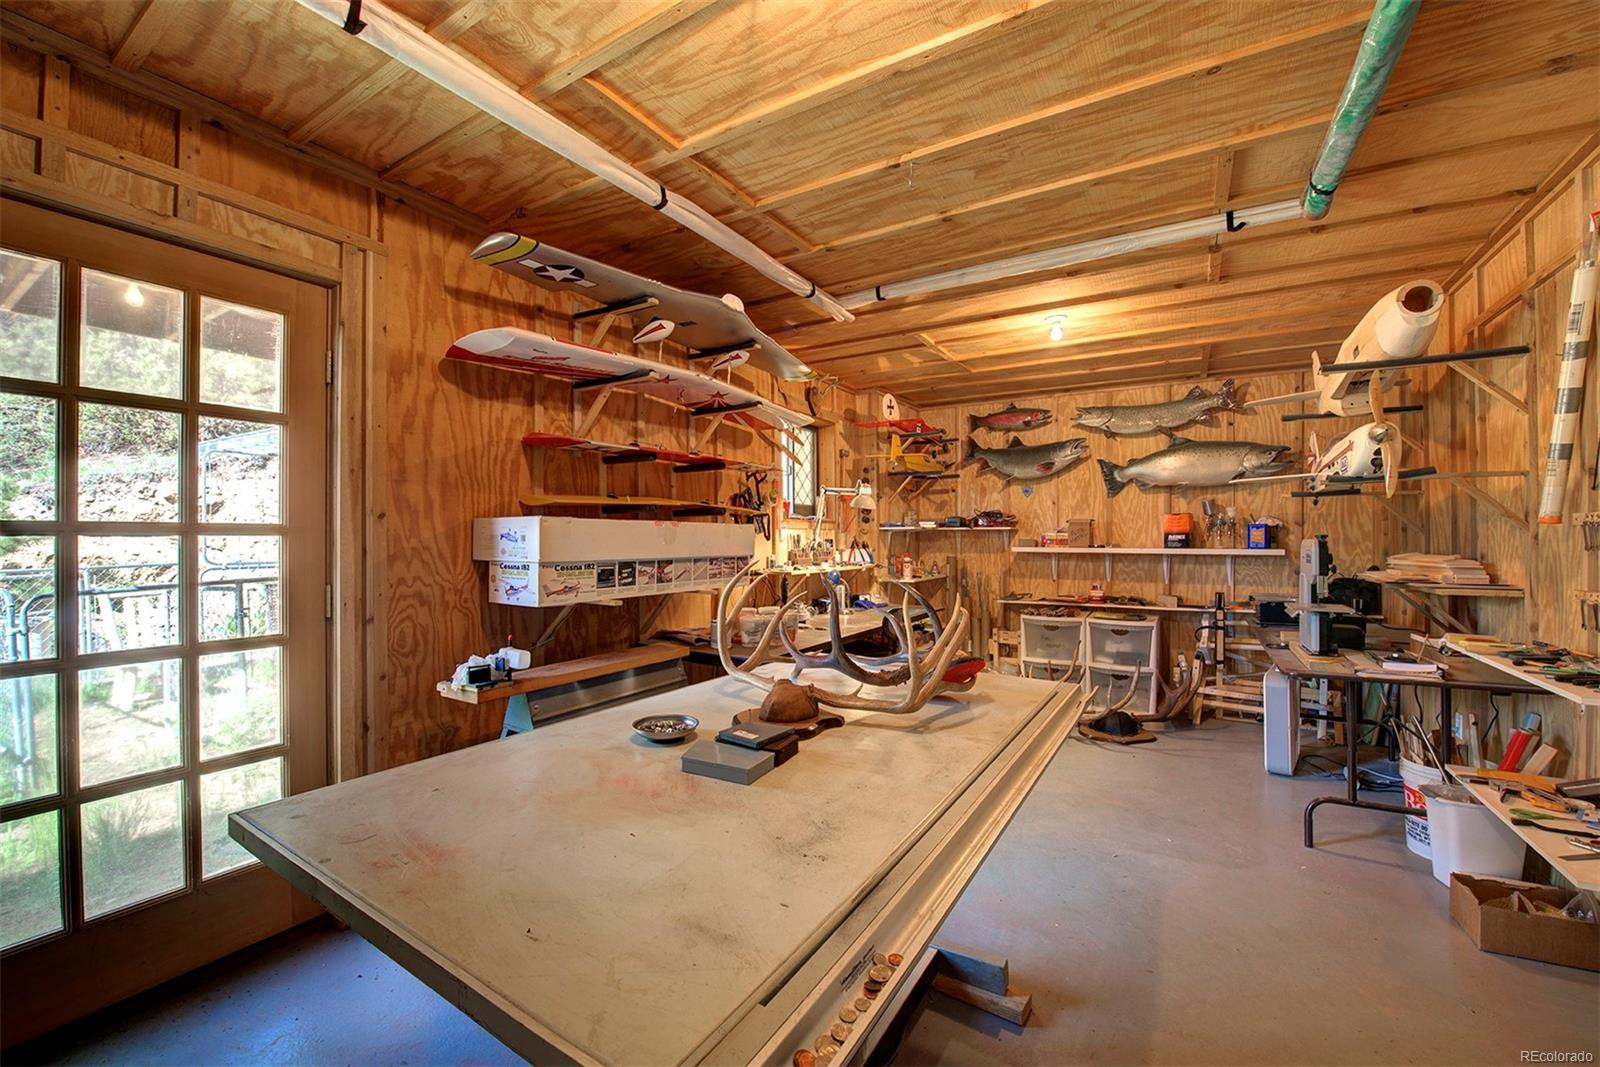 Hobby room, workshop, tack room of the barn. Has an air filtration system installed. The possibilities are endless!